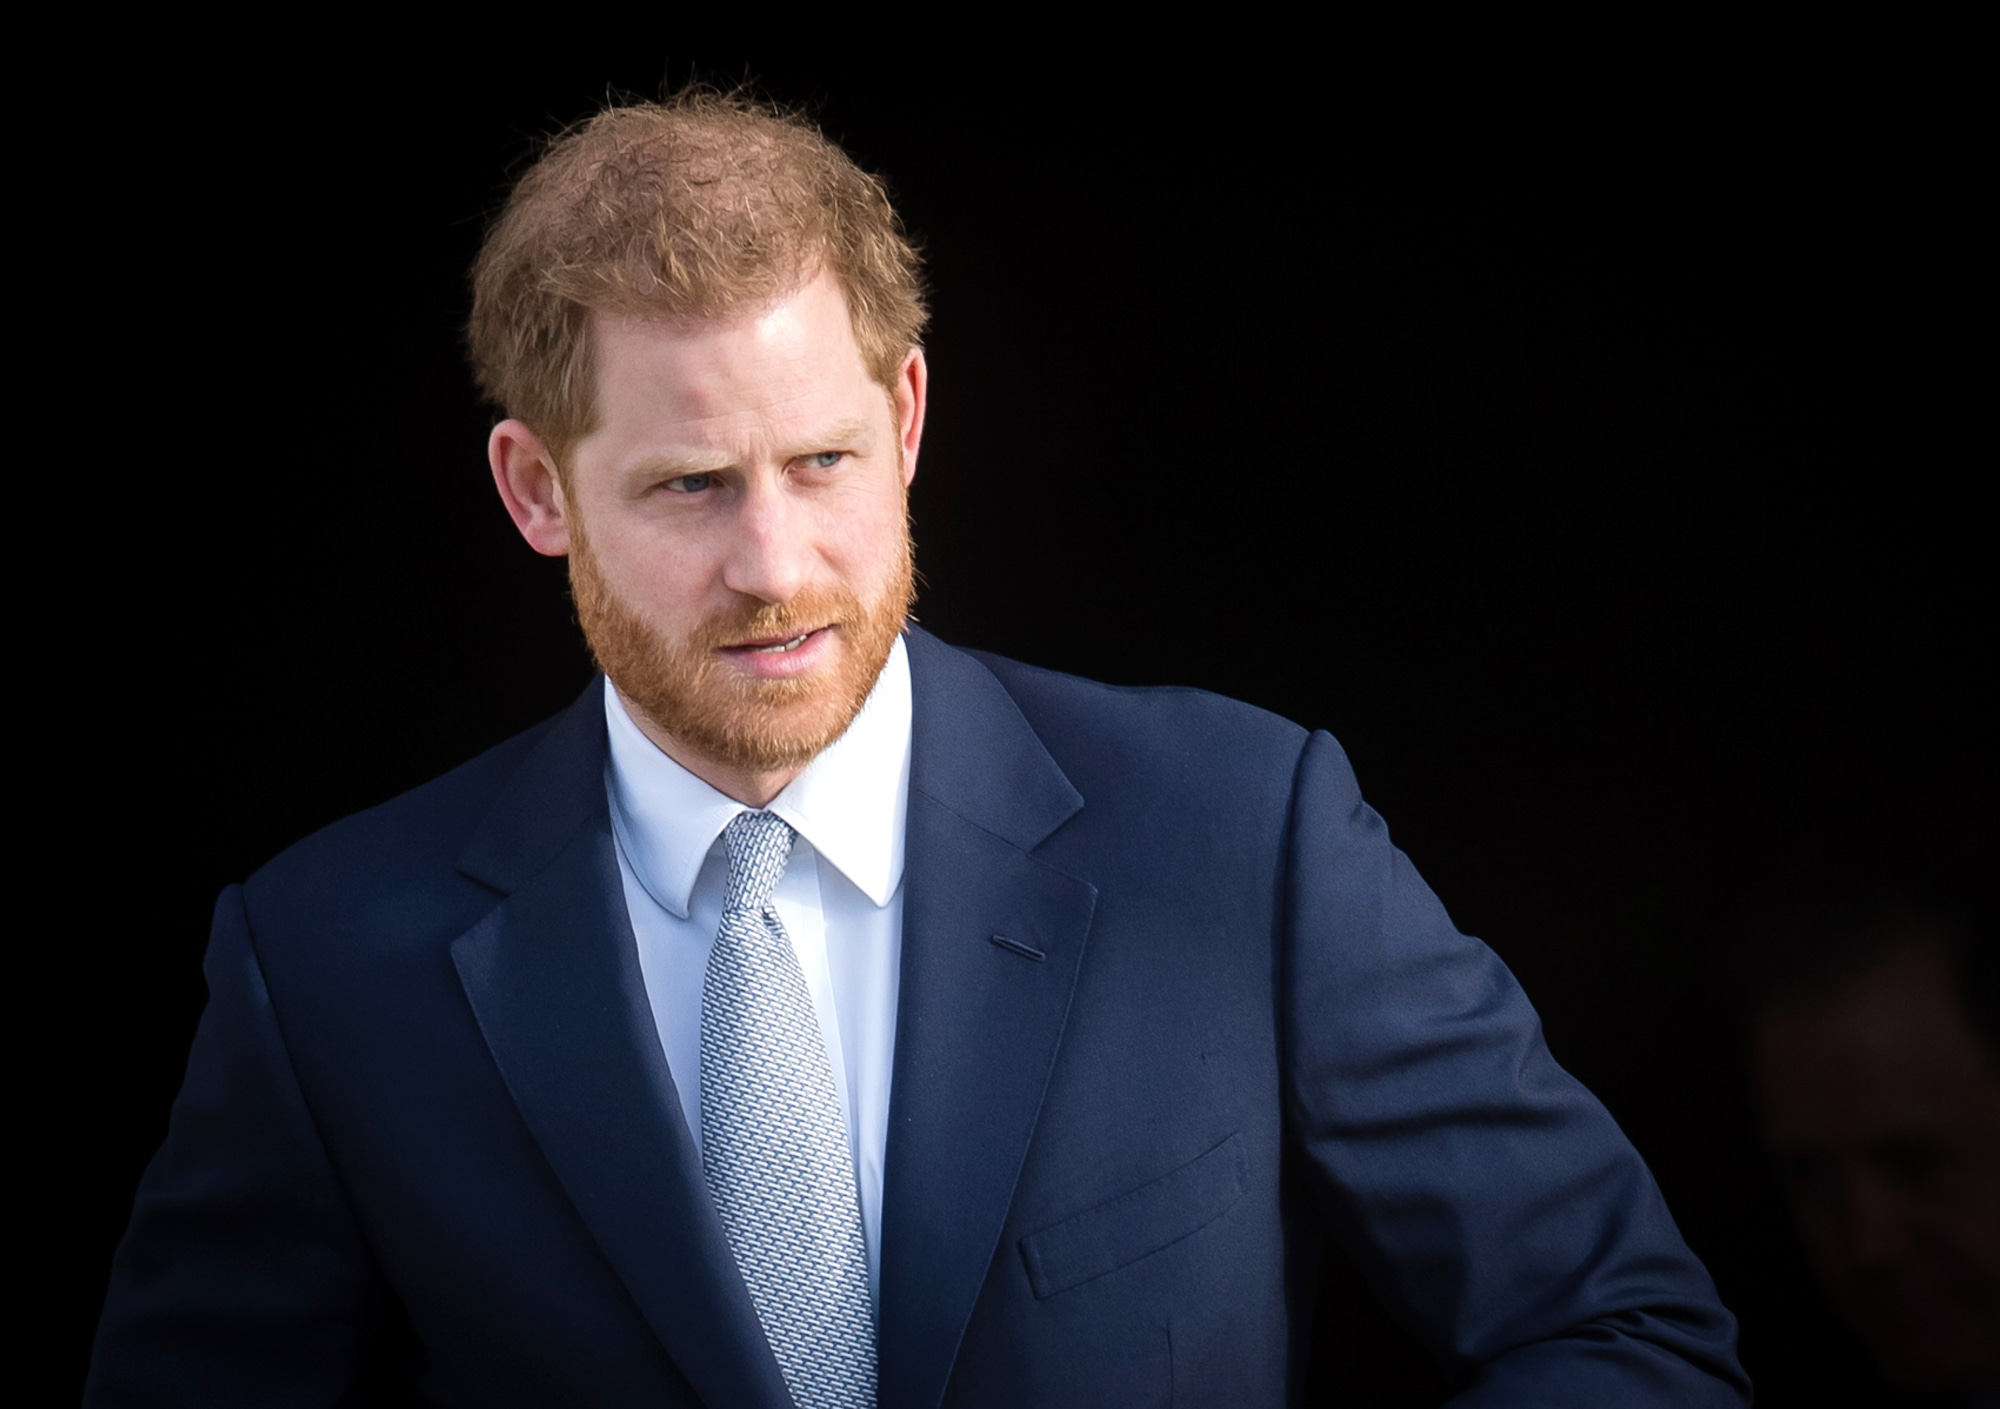 Prince Harry to Publish 'Accurate and Wholly Truthful' Memoir in 2022